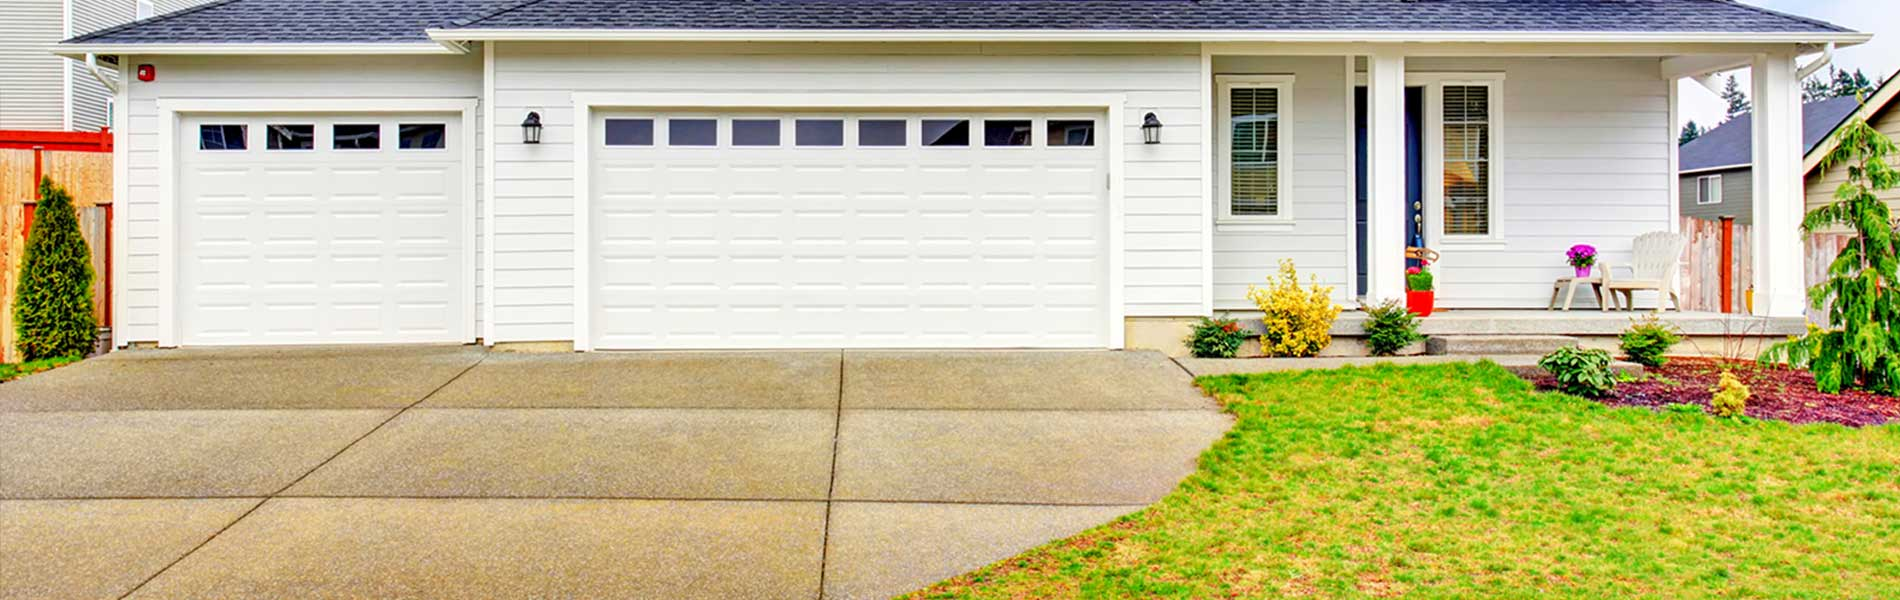 Garage Door 24 Hours Repairs, Half Moon Bay, CA 650-276-3534